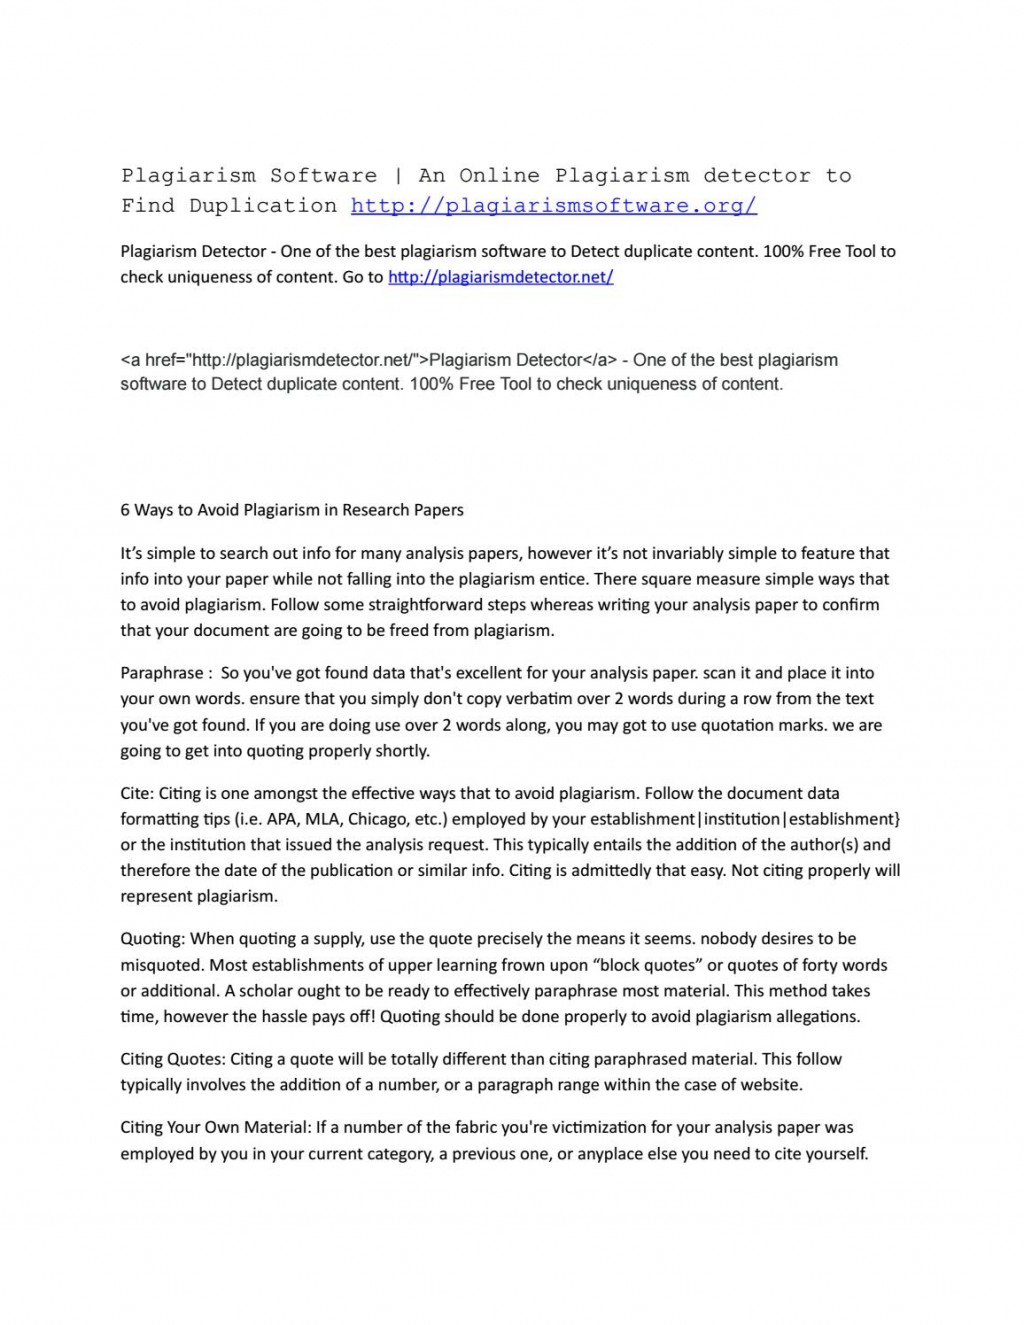 021 Page 1 Check Plagiarism Of Research Paper Online Exceptional Free How To A Checker For Papers Large